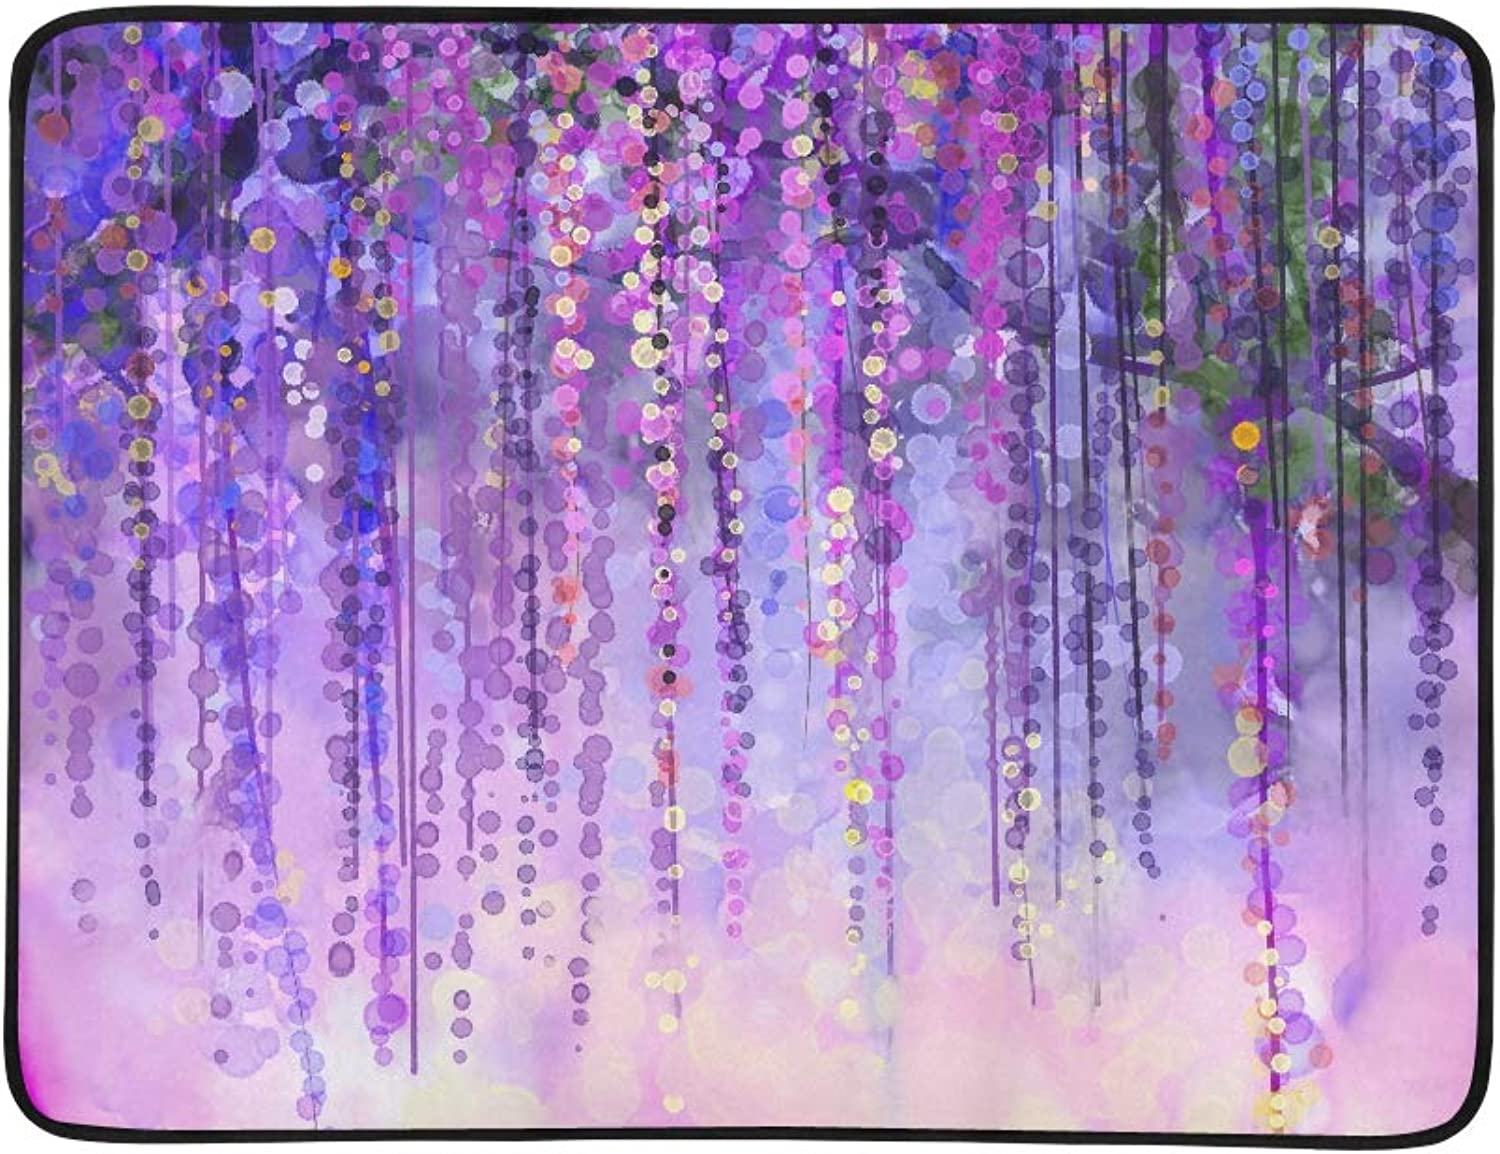 Abstract Floral Watercolor blueerred Painting Herbs purple color Flowers Pattern Portable and Foldable Blanket Mat 60x78 Inch Handy Mat for Camping Picnic Beach Indoor Outdoor Travel